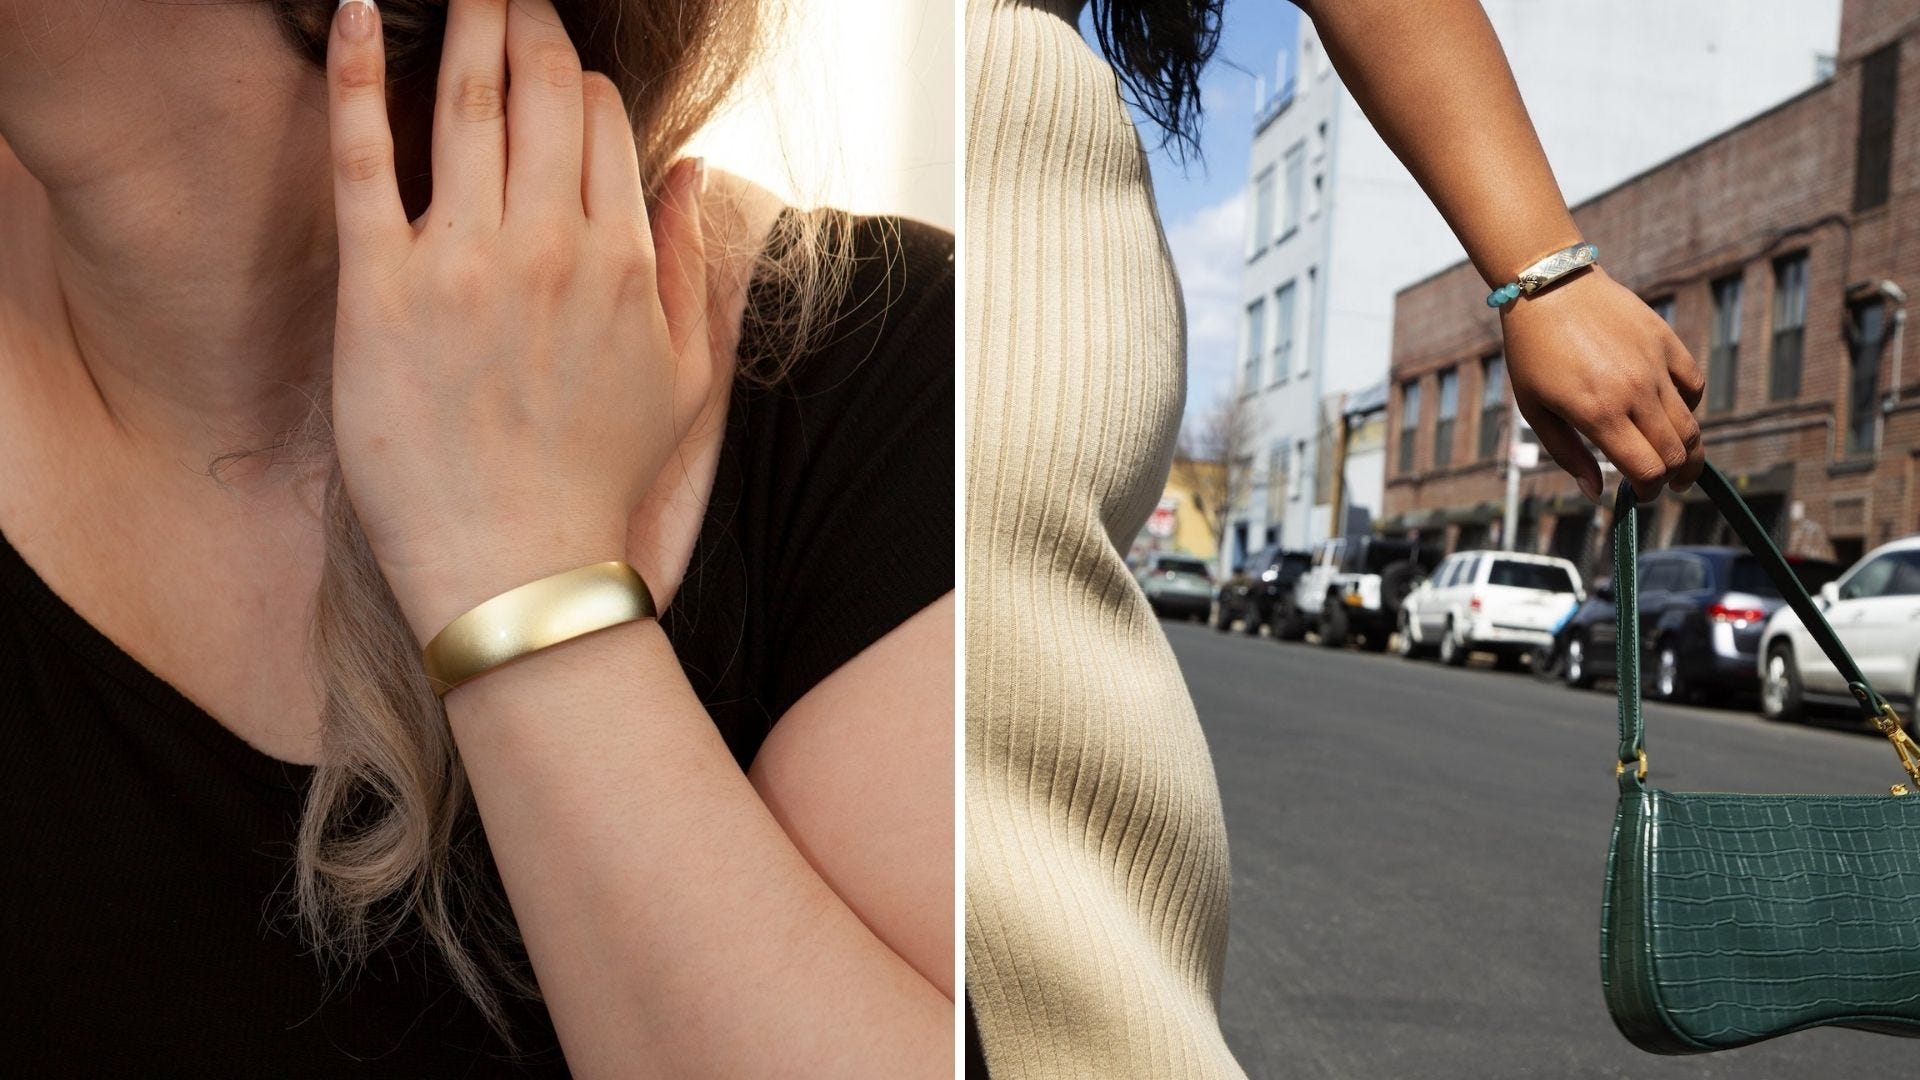 A woman wears a gold bangle and a woman holds her purse in the street